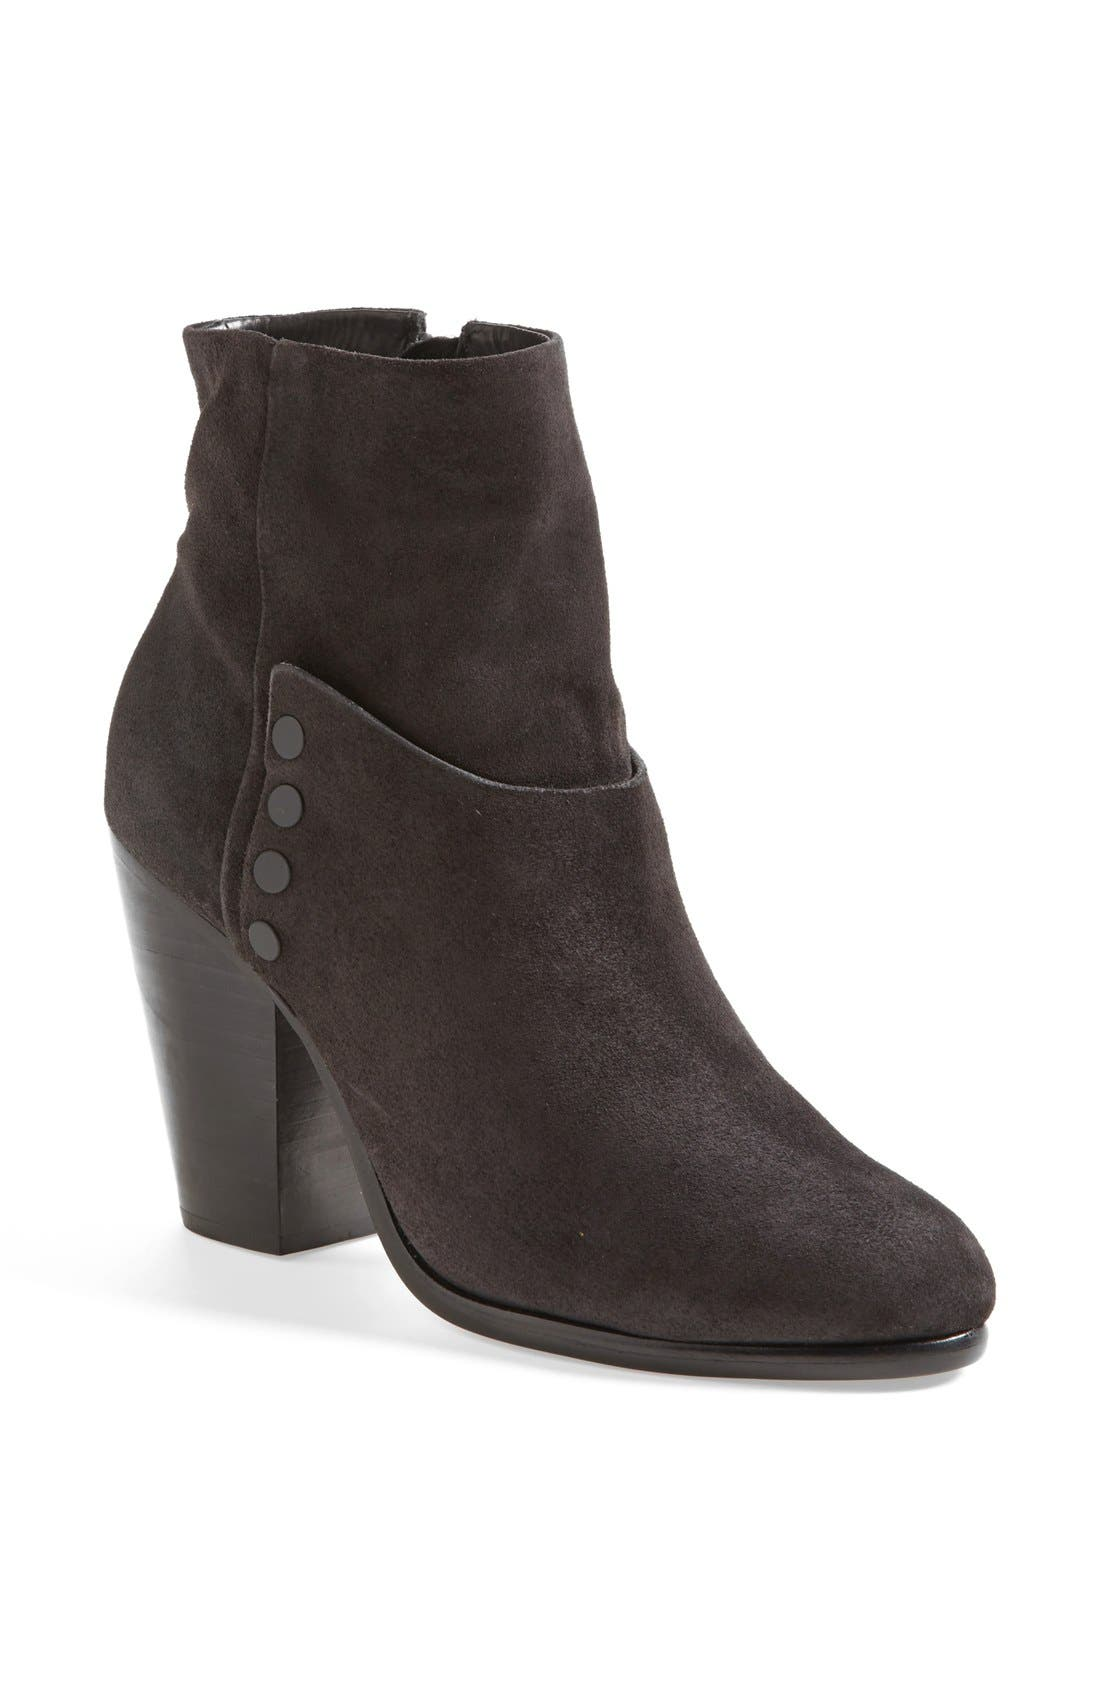 Alternate Image 1 Selected - rag & bone 'Kendall' Suede Boot